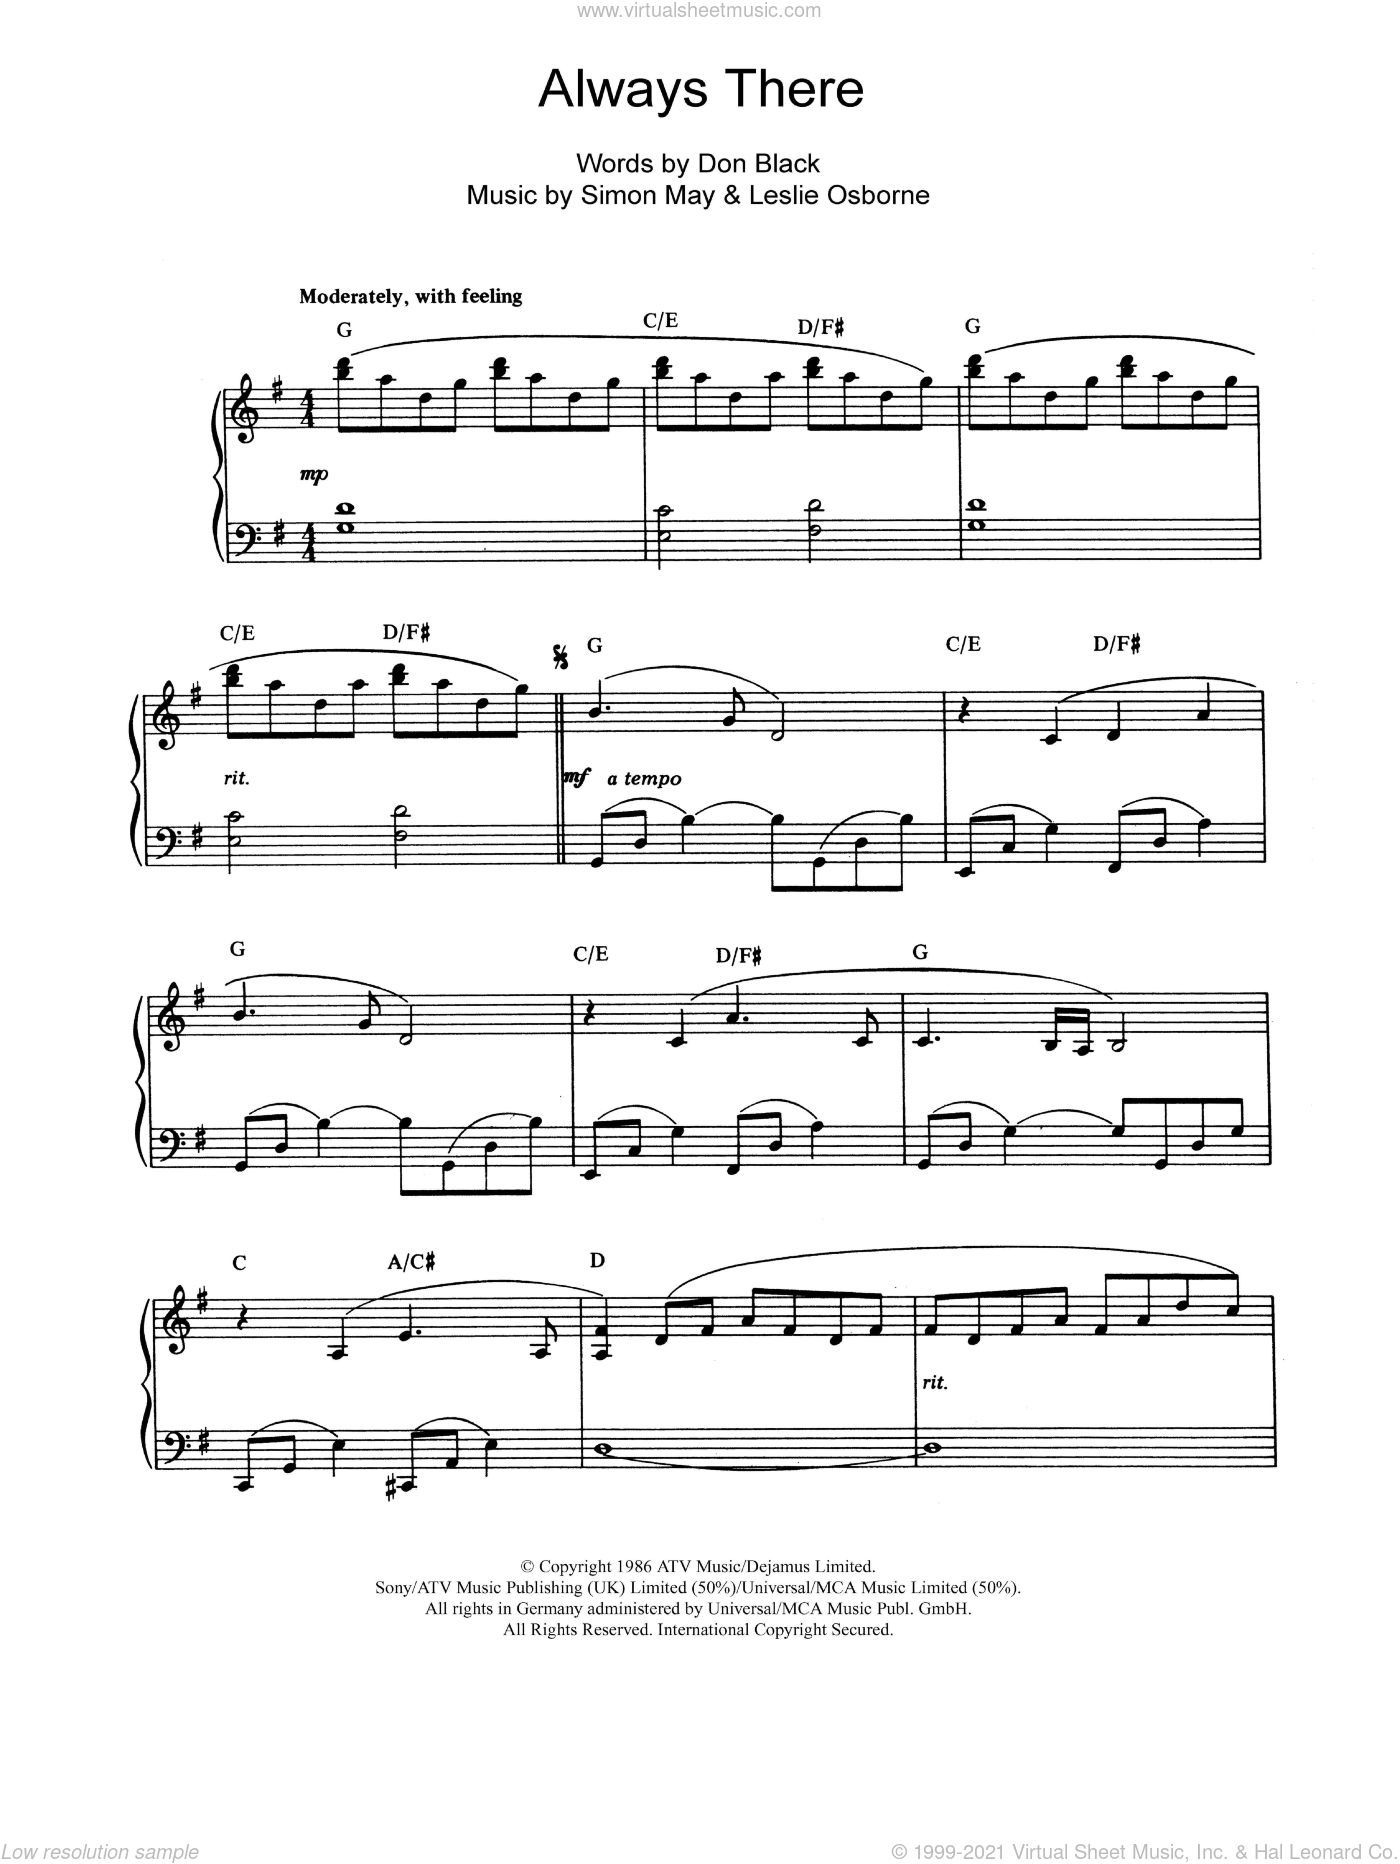 Always There sheet music for piano solo by Simon May